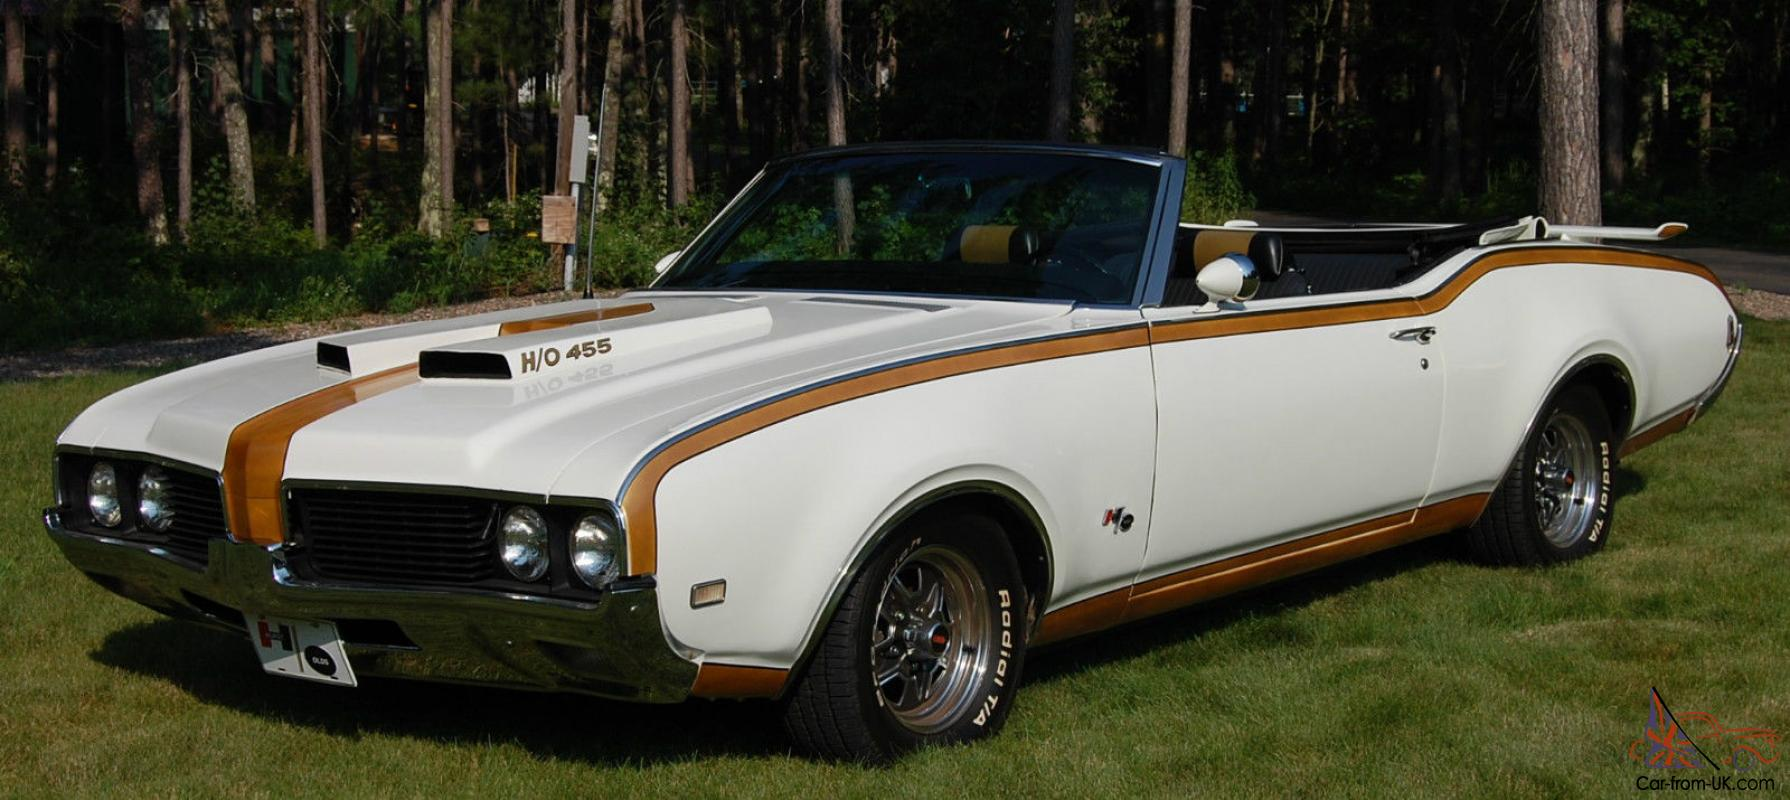 1969 Hurst Olds Convertible